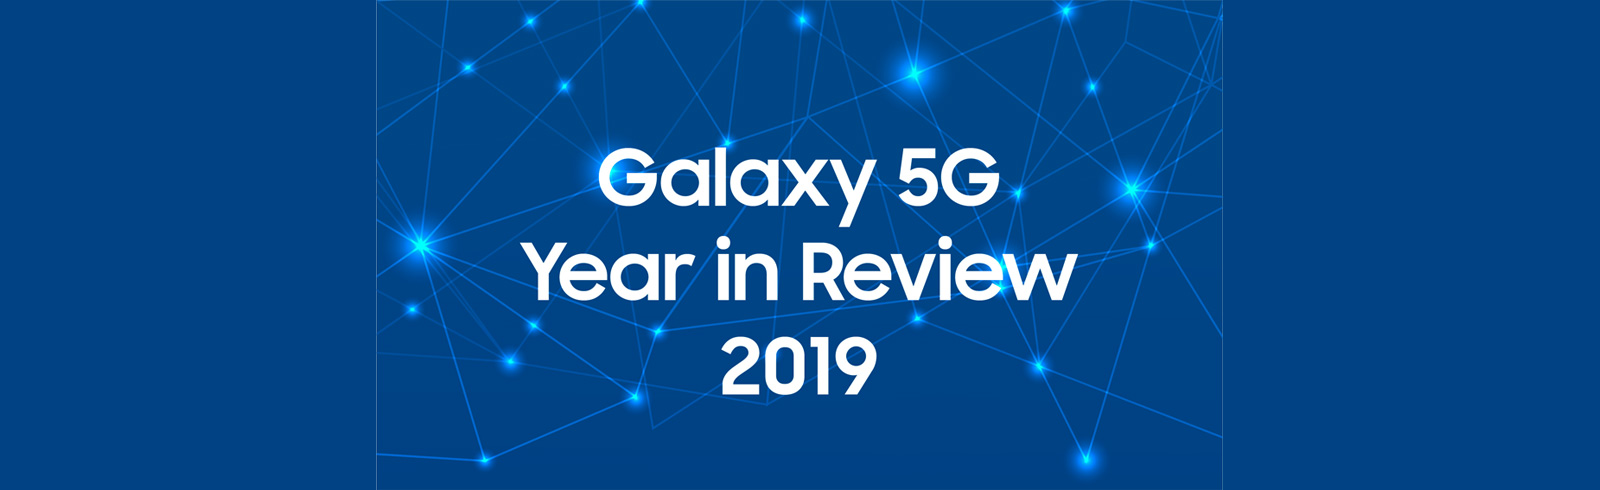 Samsung has shipped more than 6.7 million Galaxy 5G smartphones globally in 2019